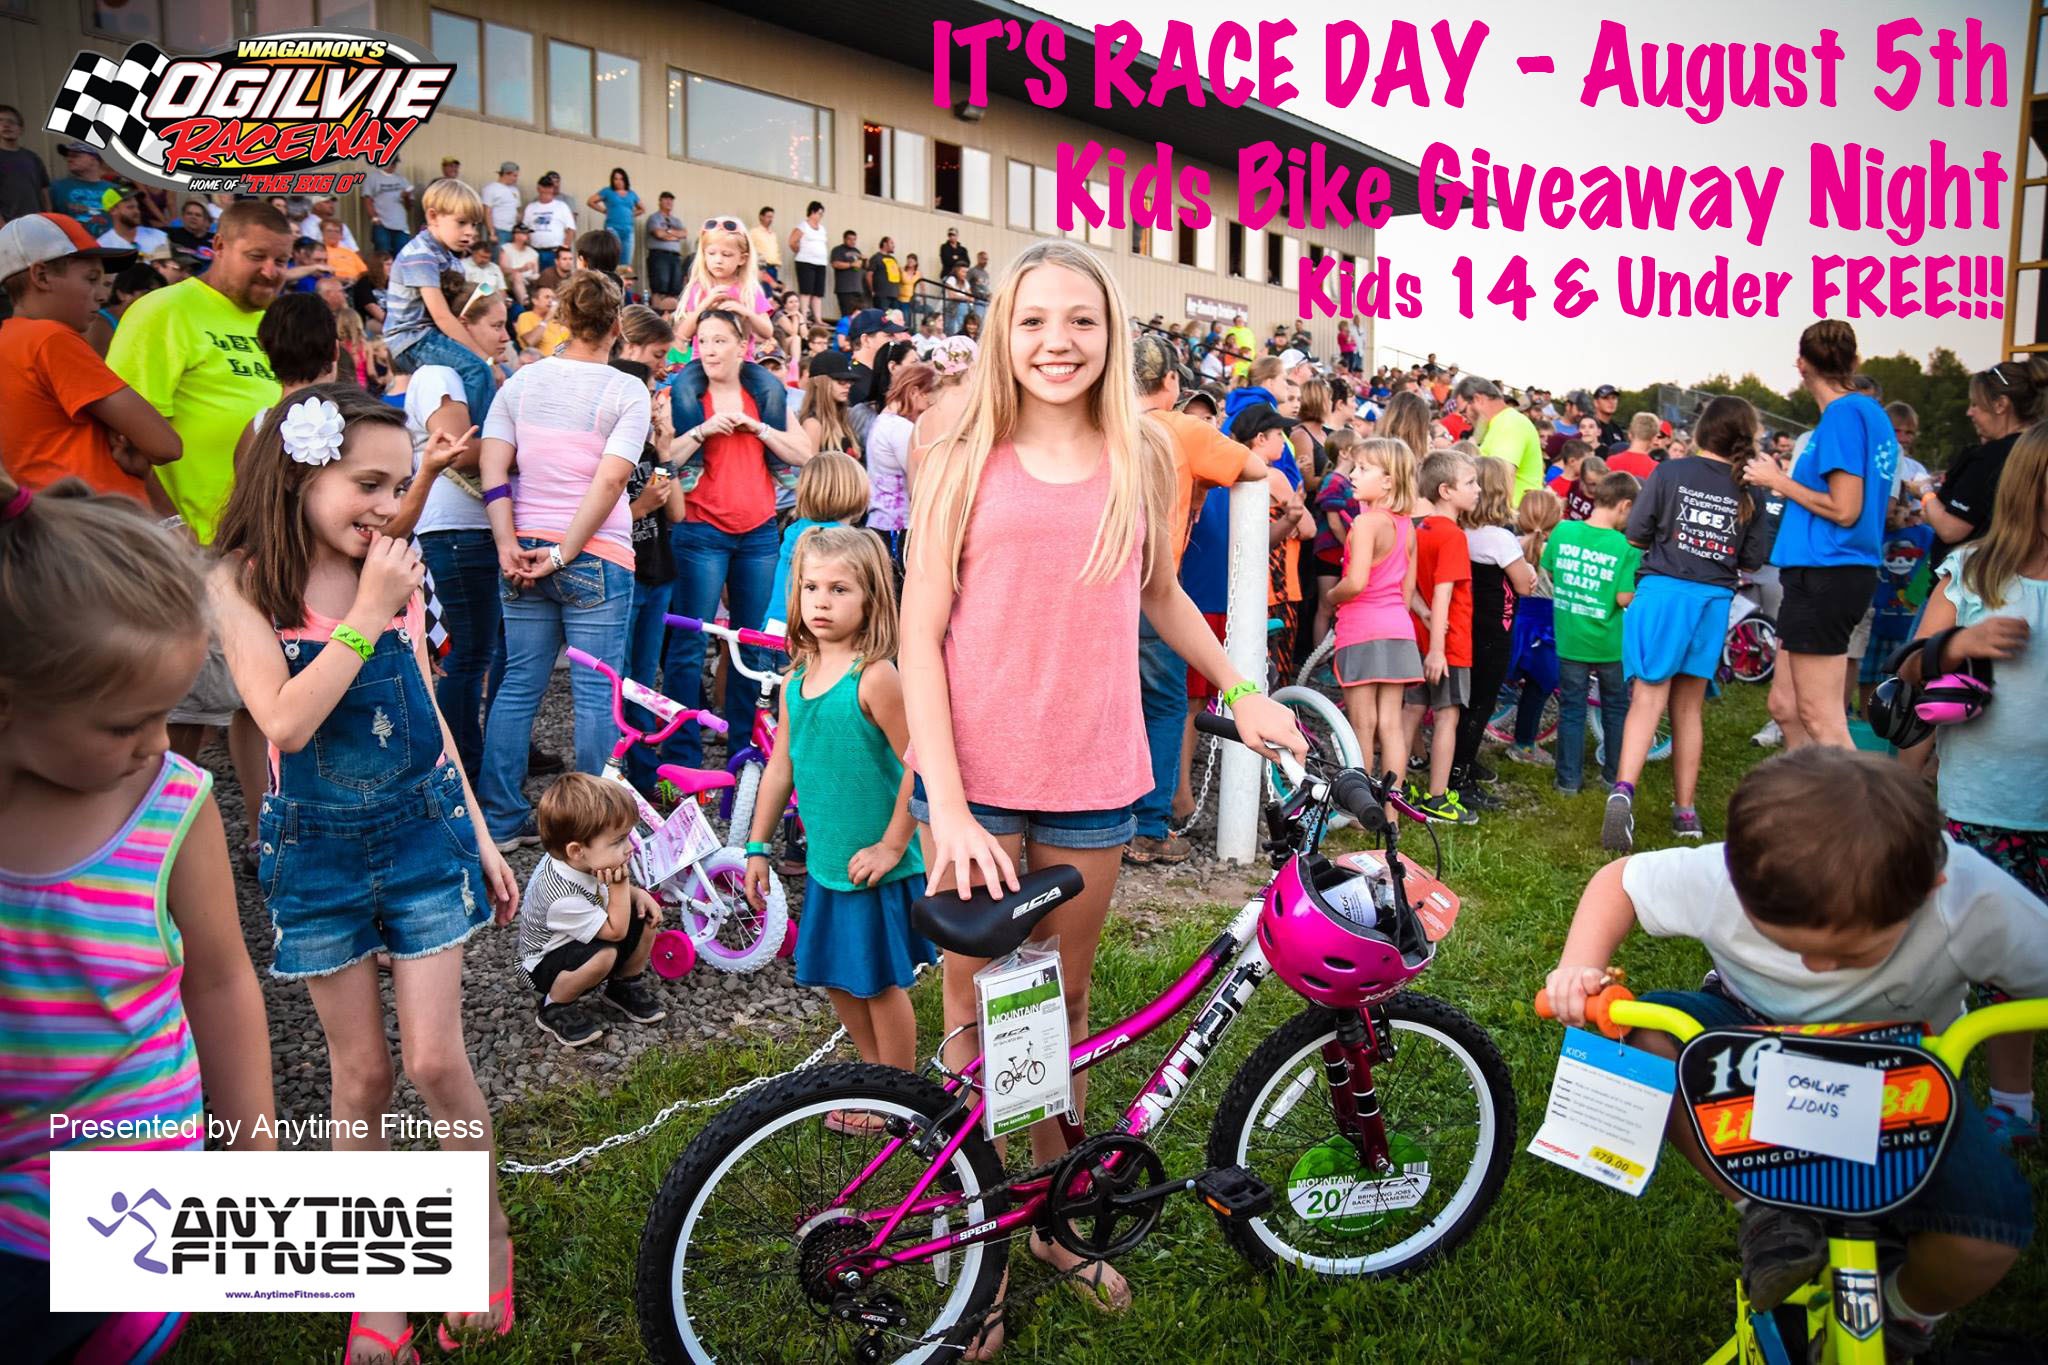 Kids Night / Bike Giveaway Night – August 5th presented by Anytime Fitness